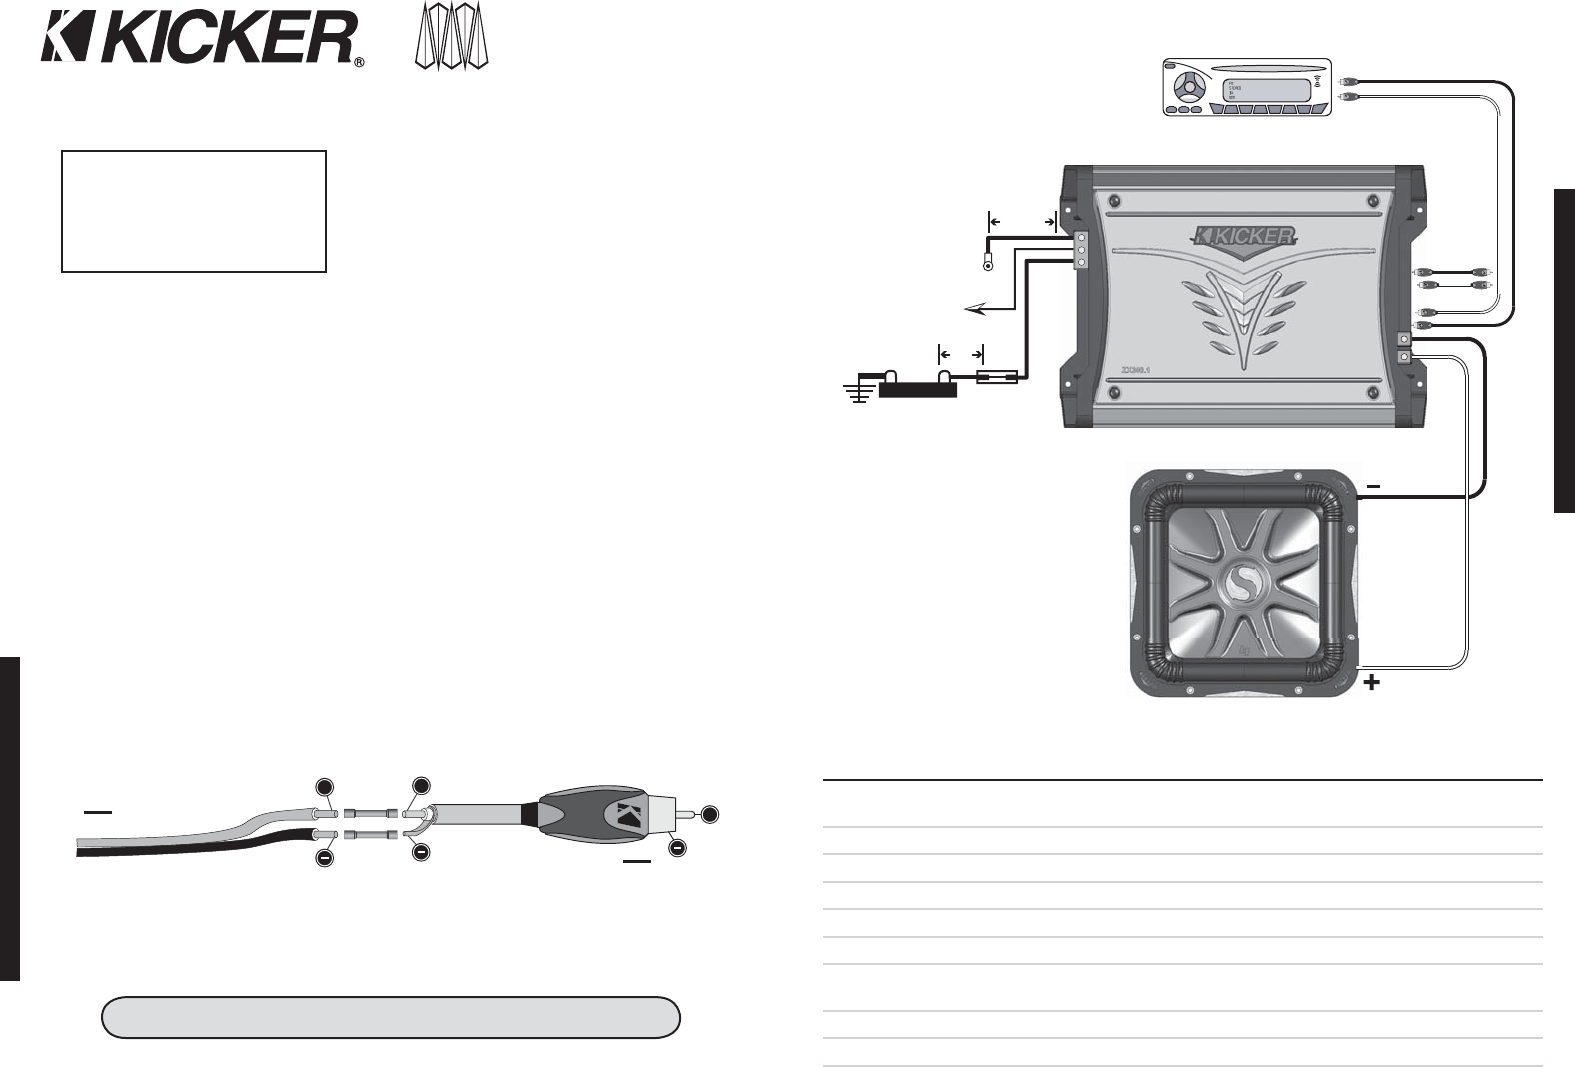 cbb5068e c461 cf14 b527 a350f3c723e2 bg2 page 2 of kicker stereo amplifier zx300 1 user guide kicker l7 wiring diagram at bayanpartner.co